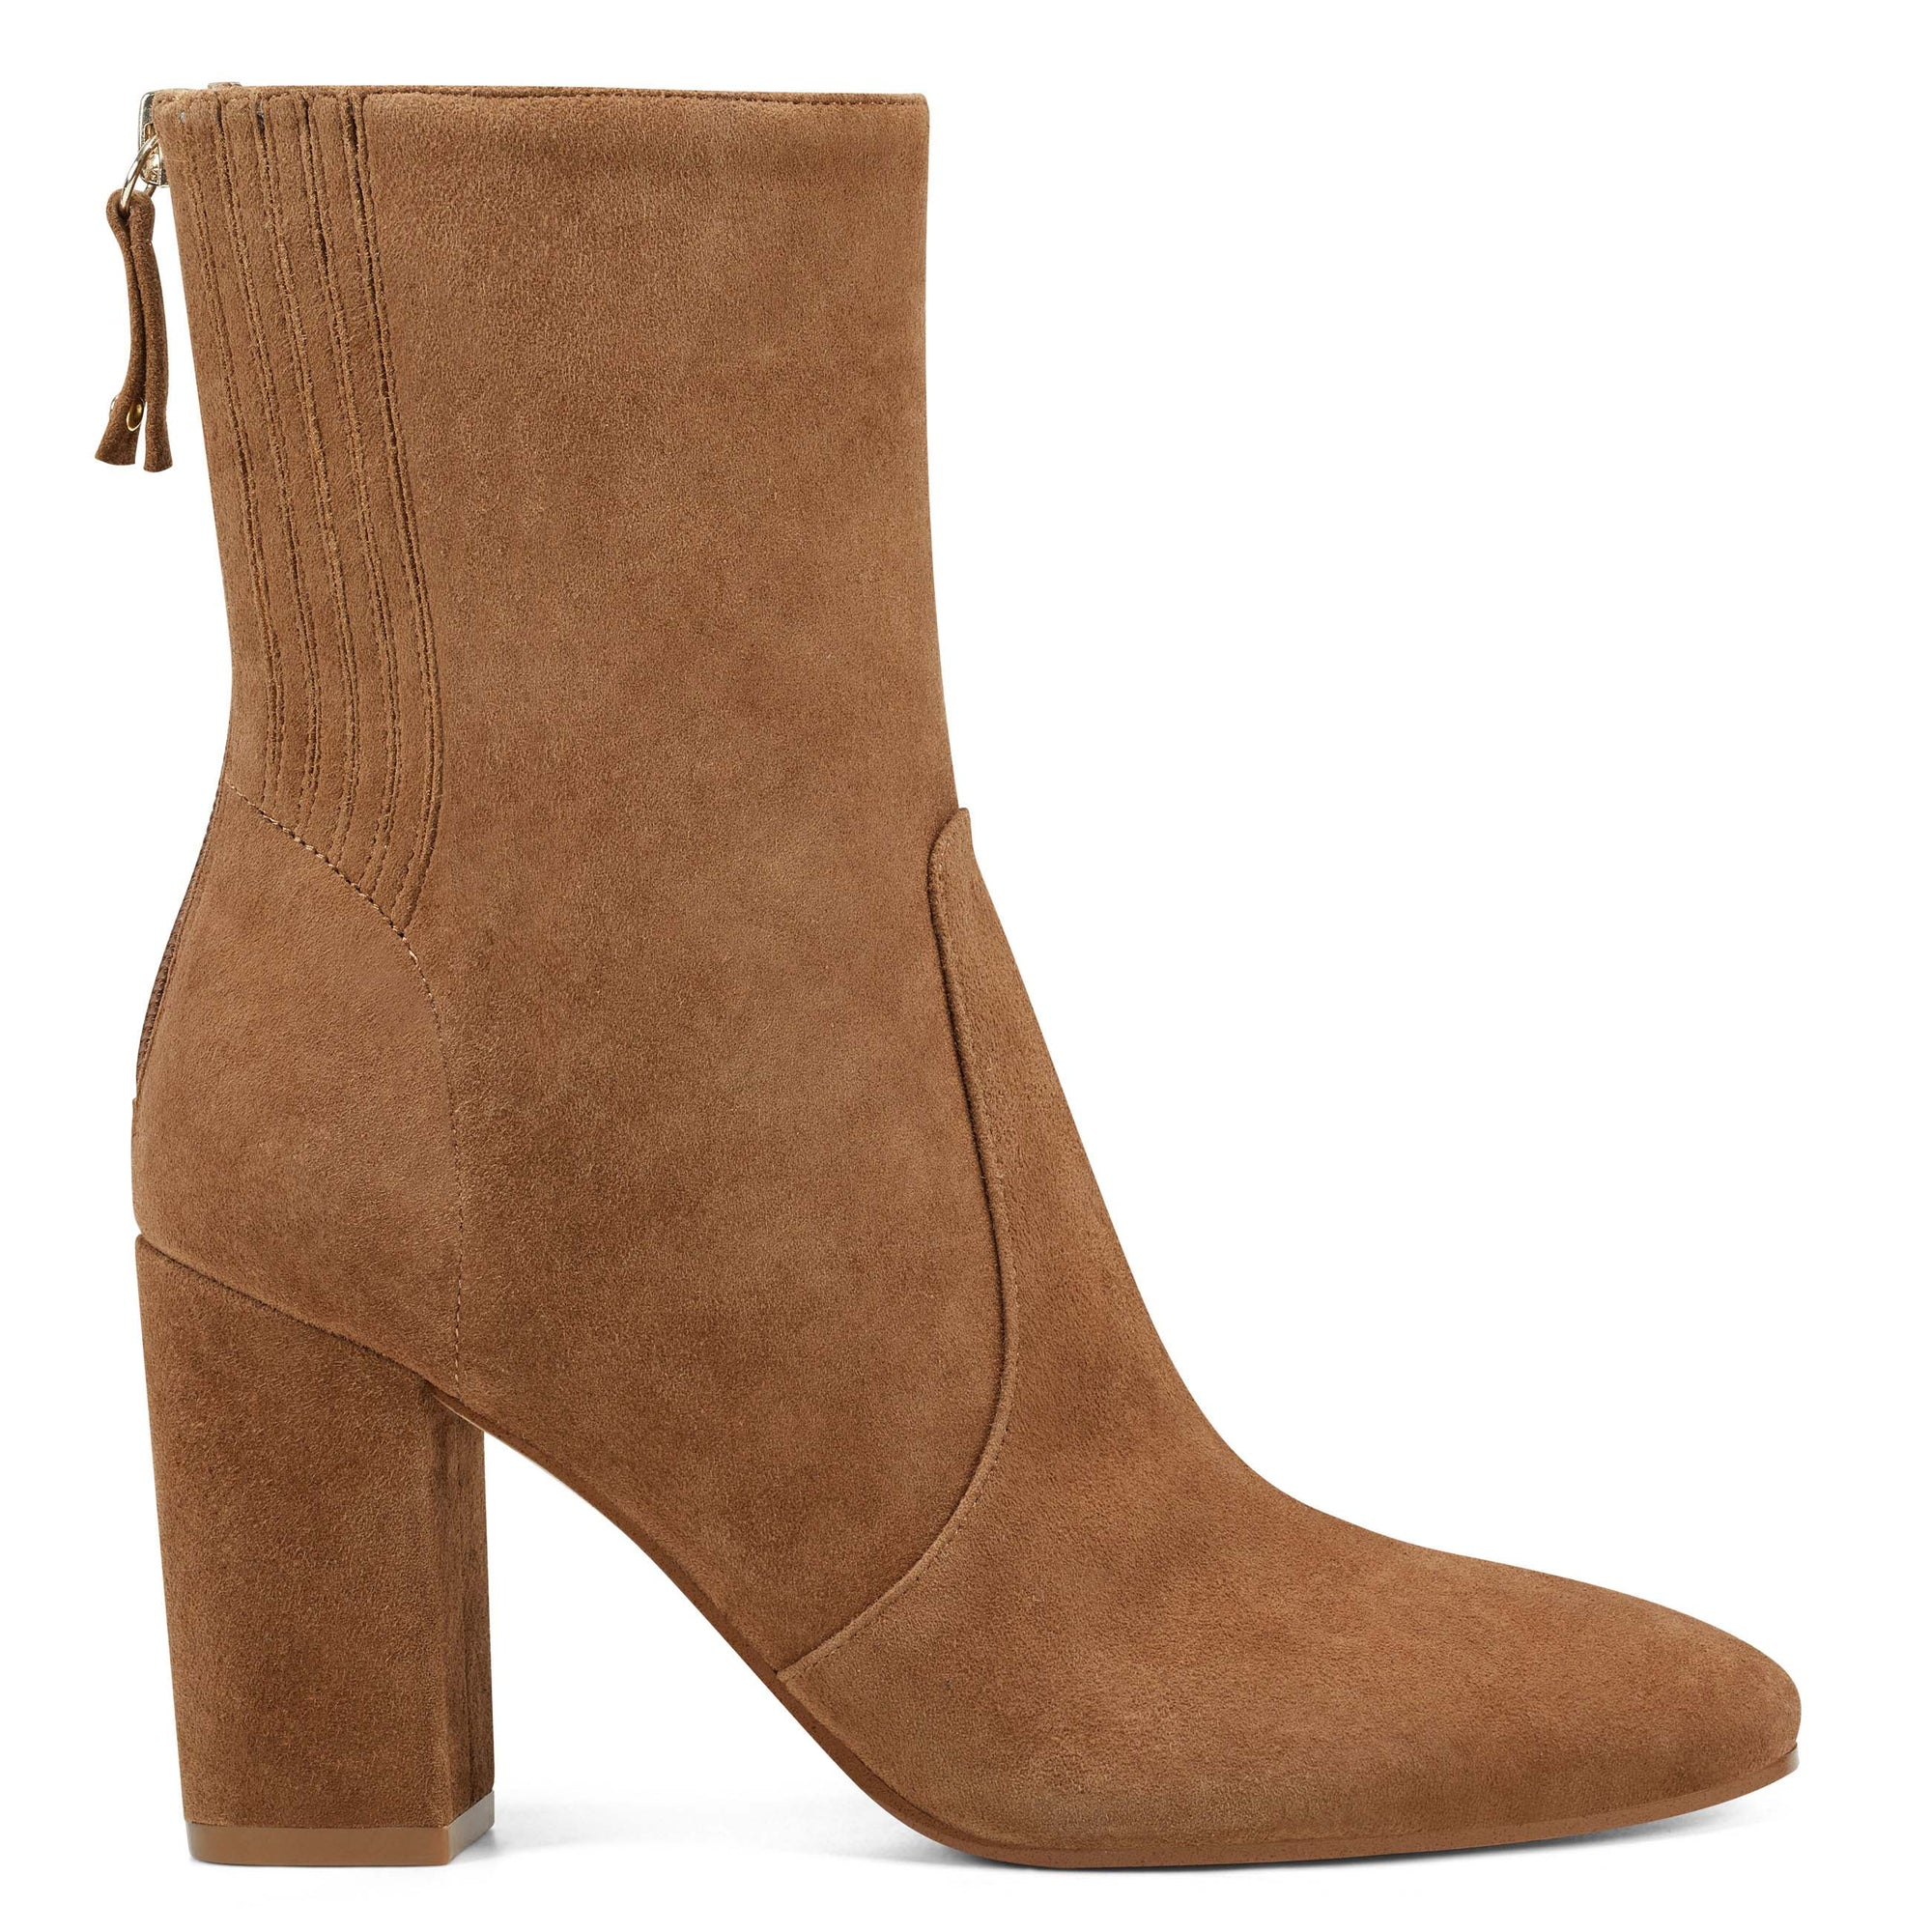 Windsor dress bootie